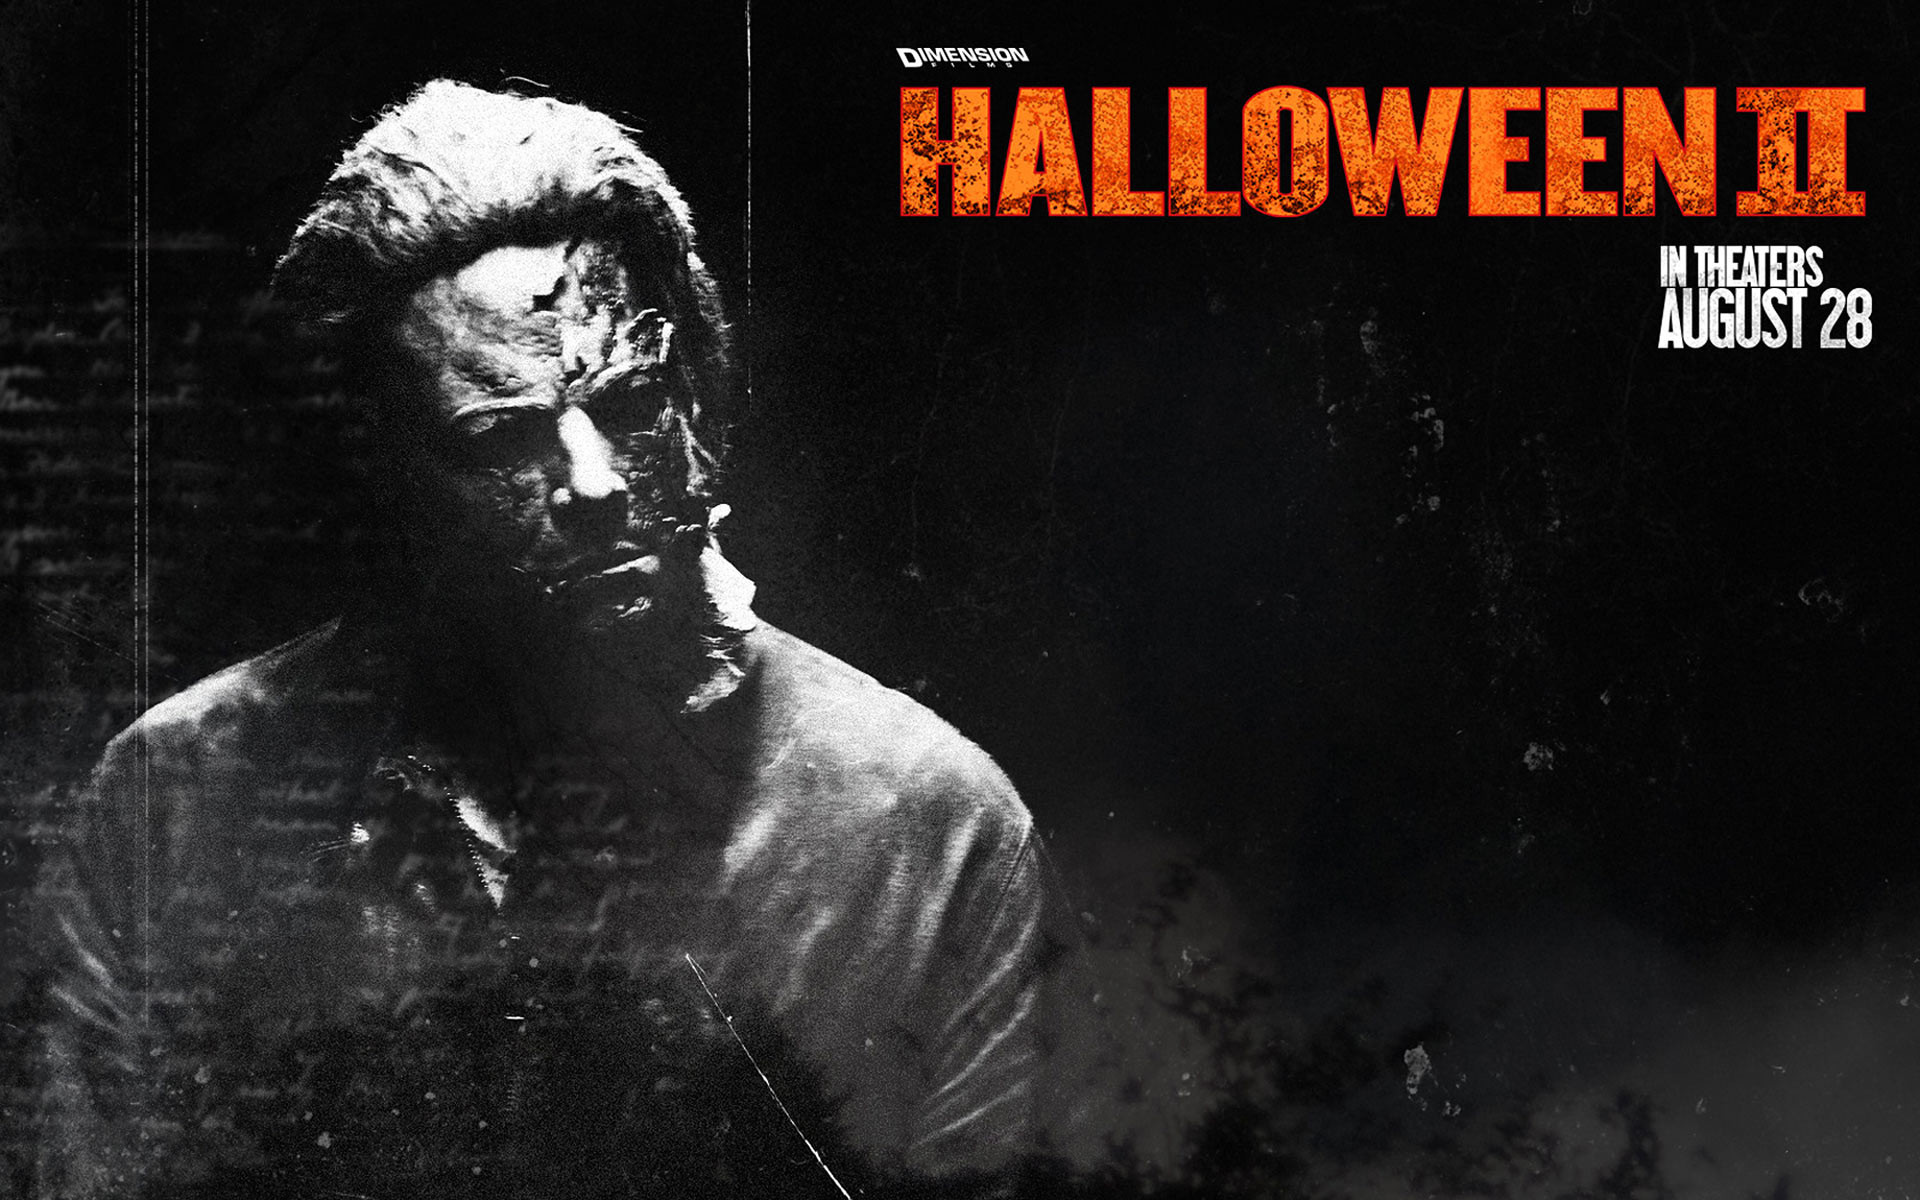 1920x1200 Scary Halloween Wallpapers of Zombies | Halloween 2, Halloween 2, horror,  rob zombie